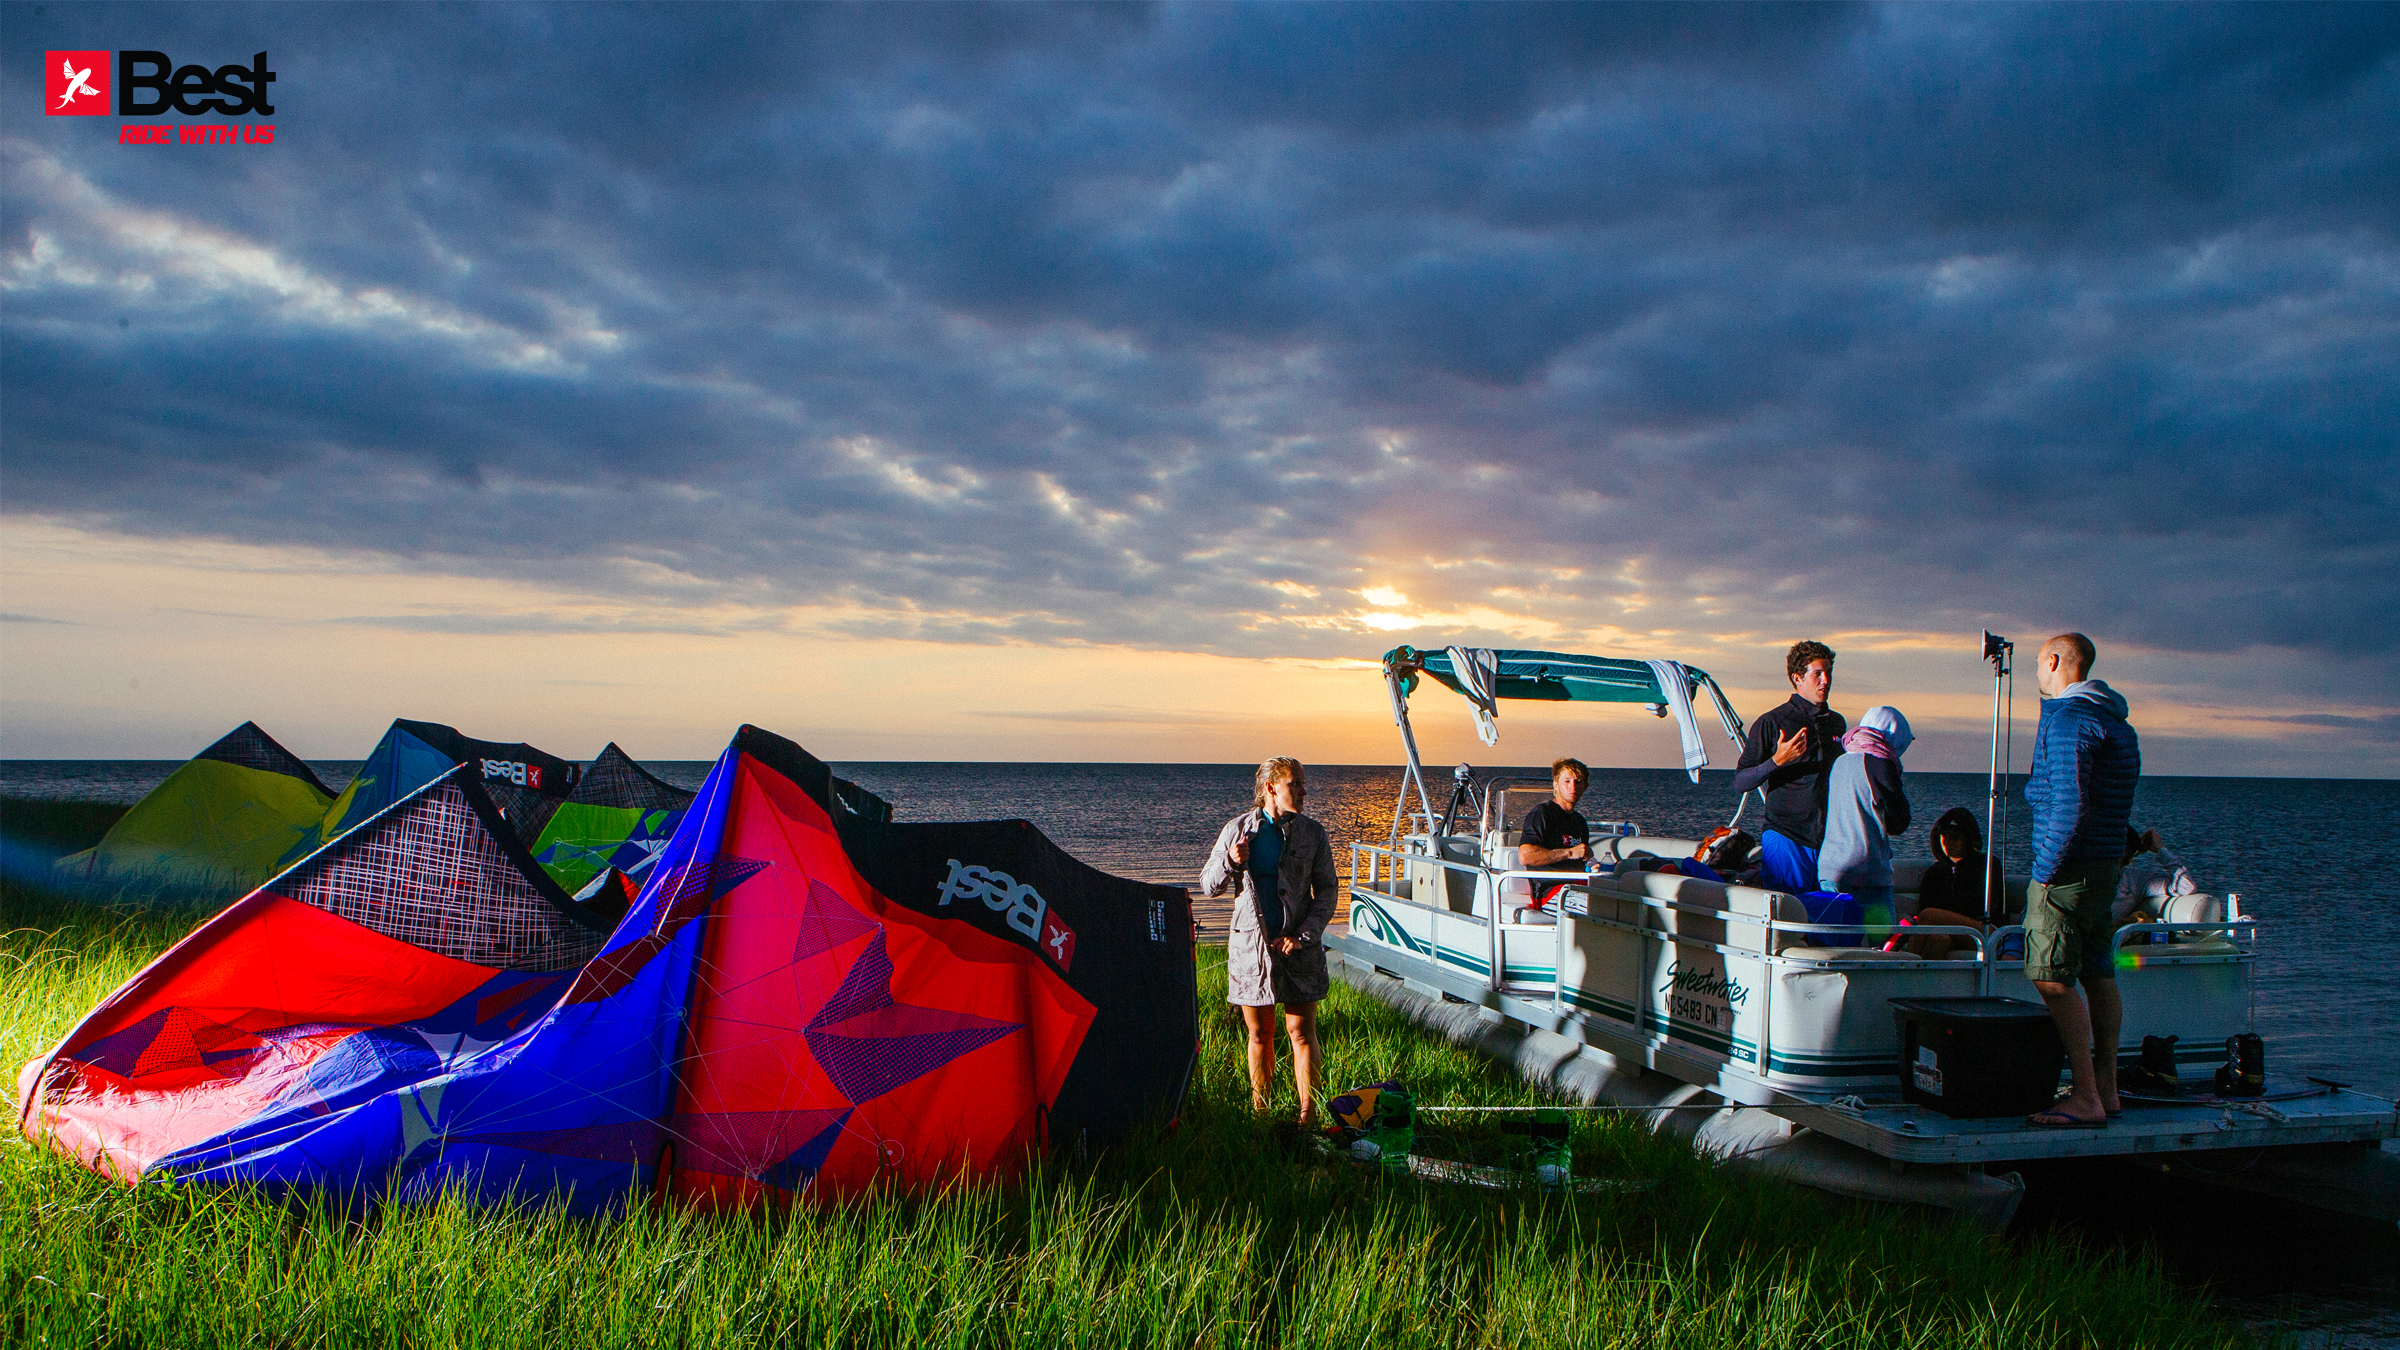 kitesurf wallpaper image - The Best kiteboarding crew chilling out at Cape Hatteras after a day on the water - in resolution: High Definition - HD 16:9 2400 X 1350